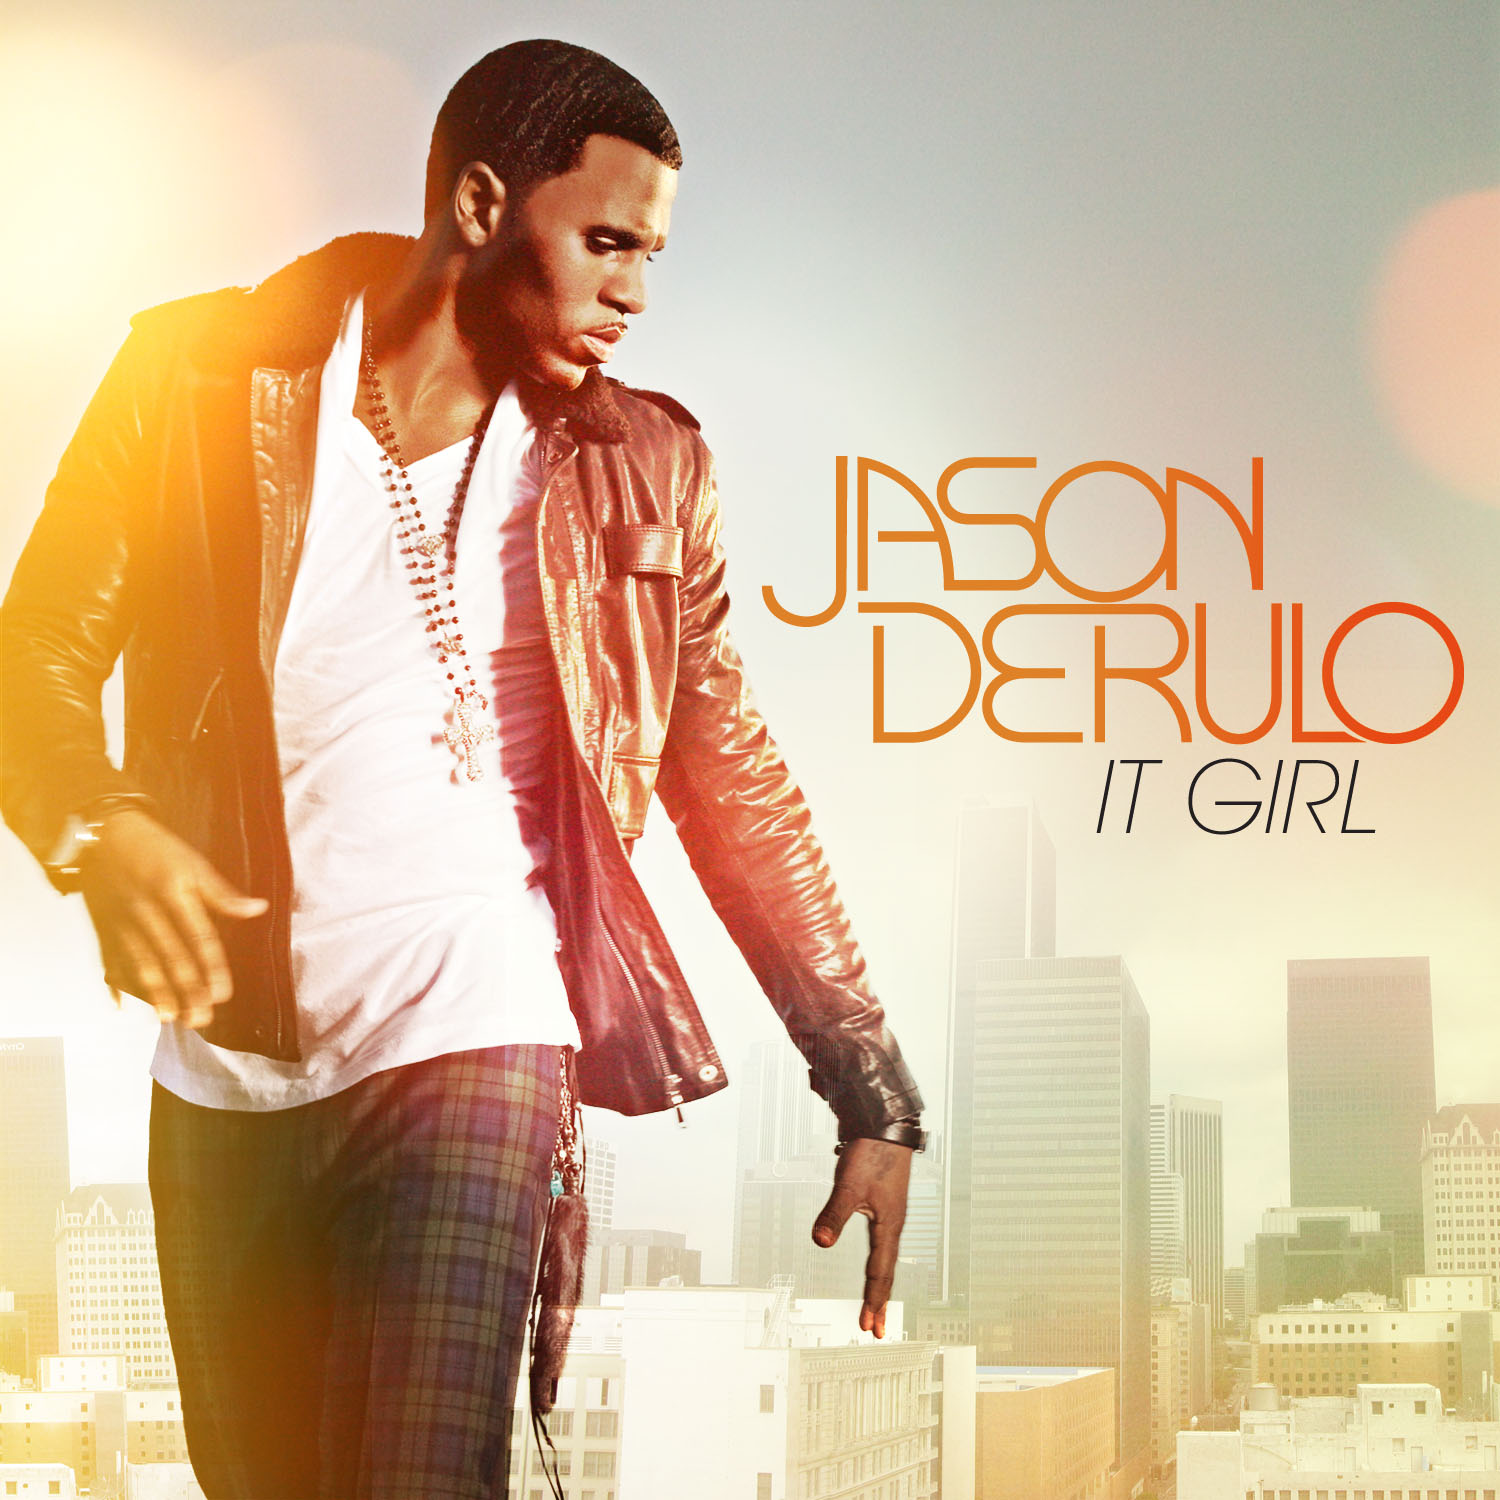 Jason Derulo - It Girl